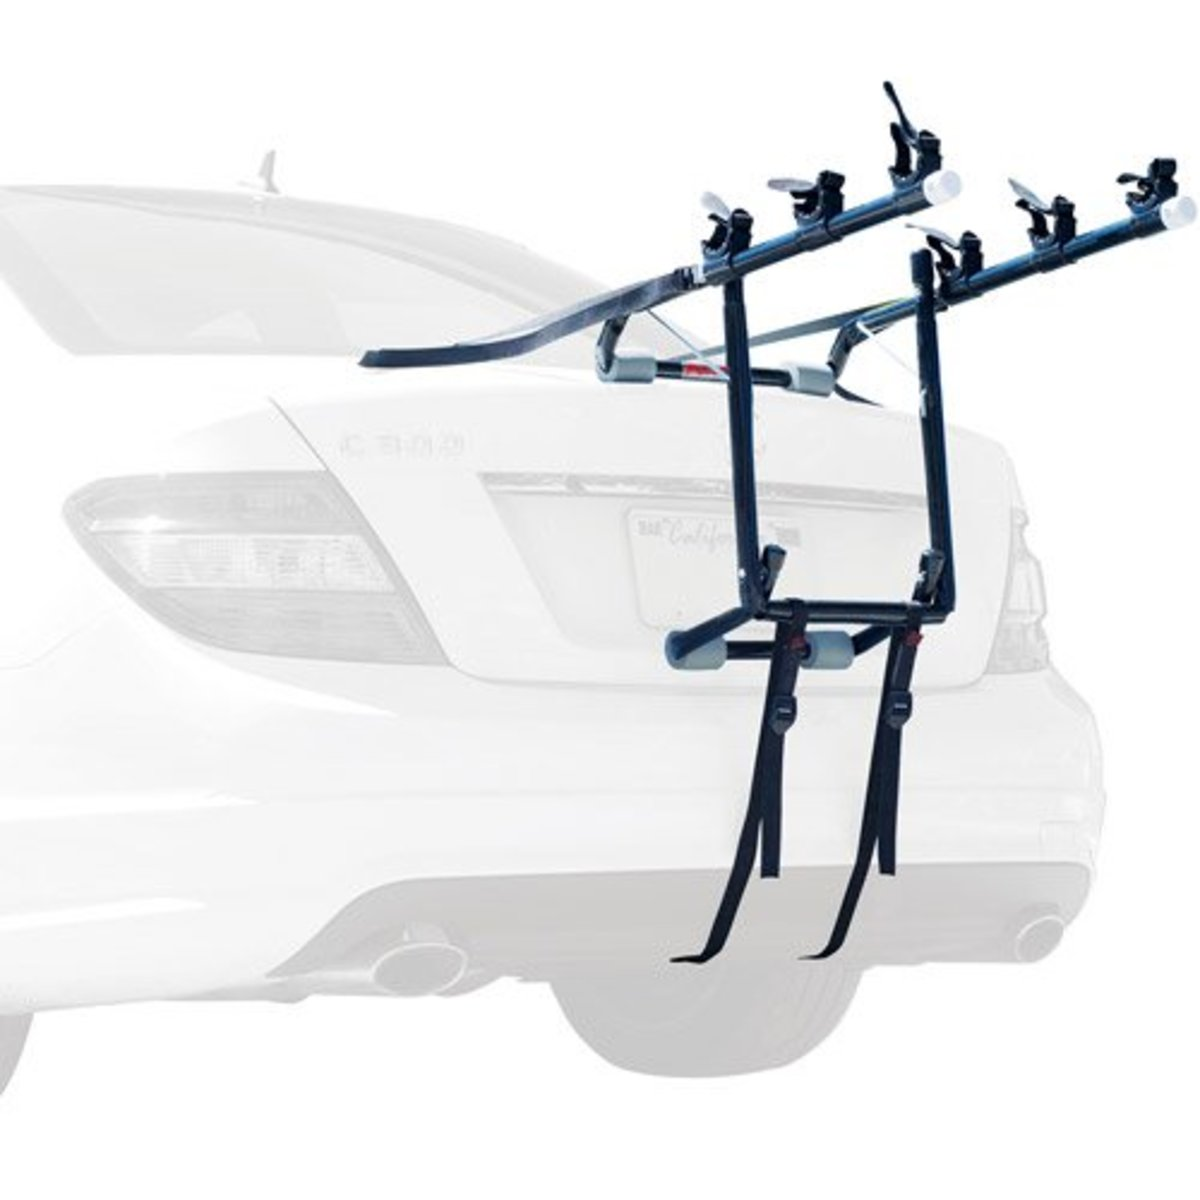 10 Best Bike Racks for Car Trunks